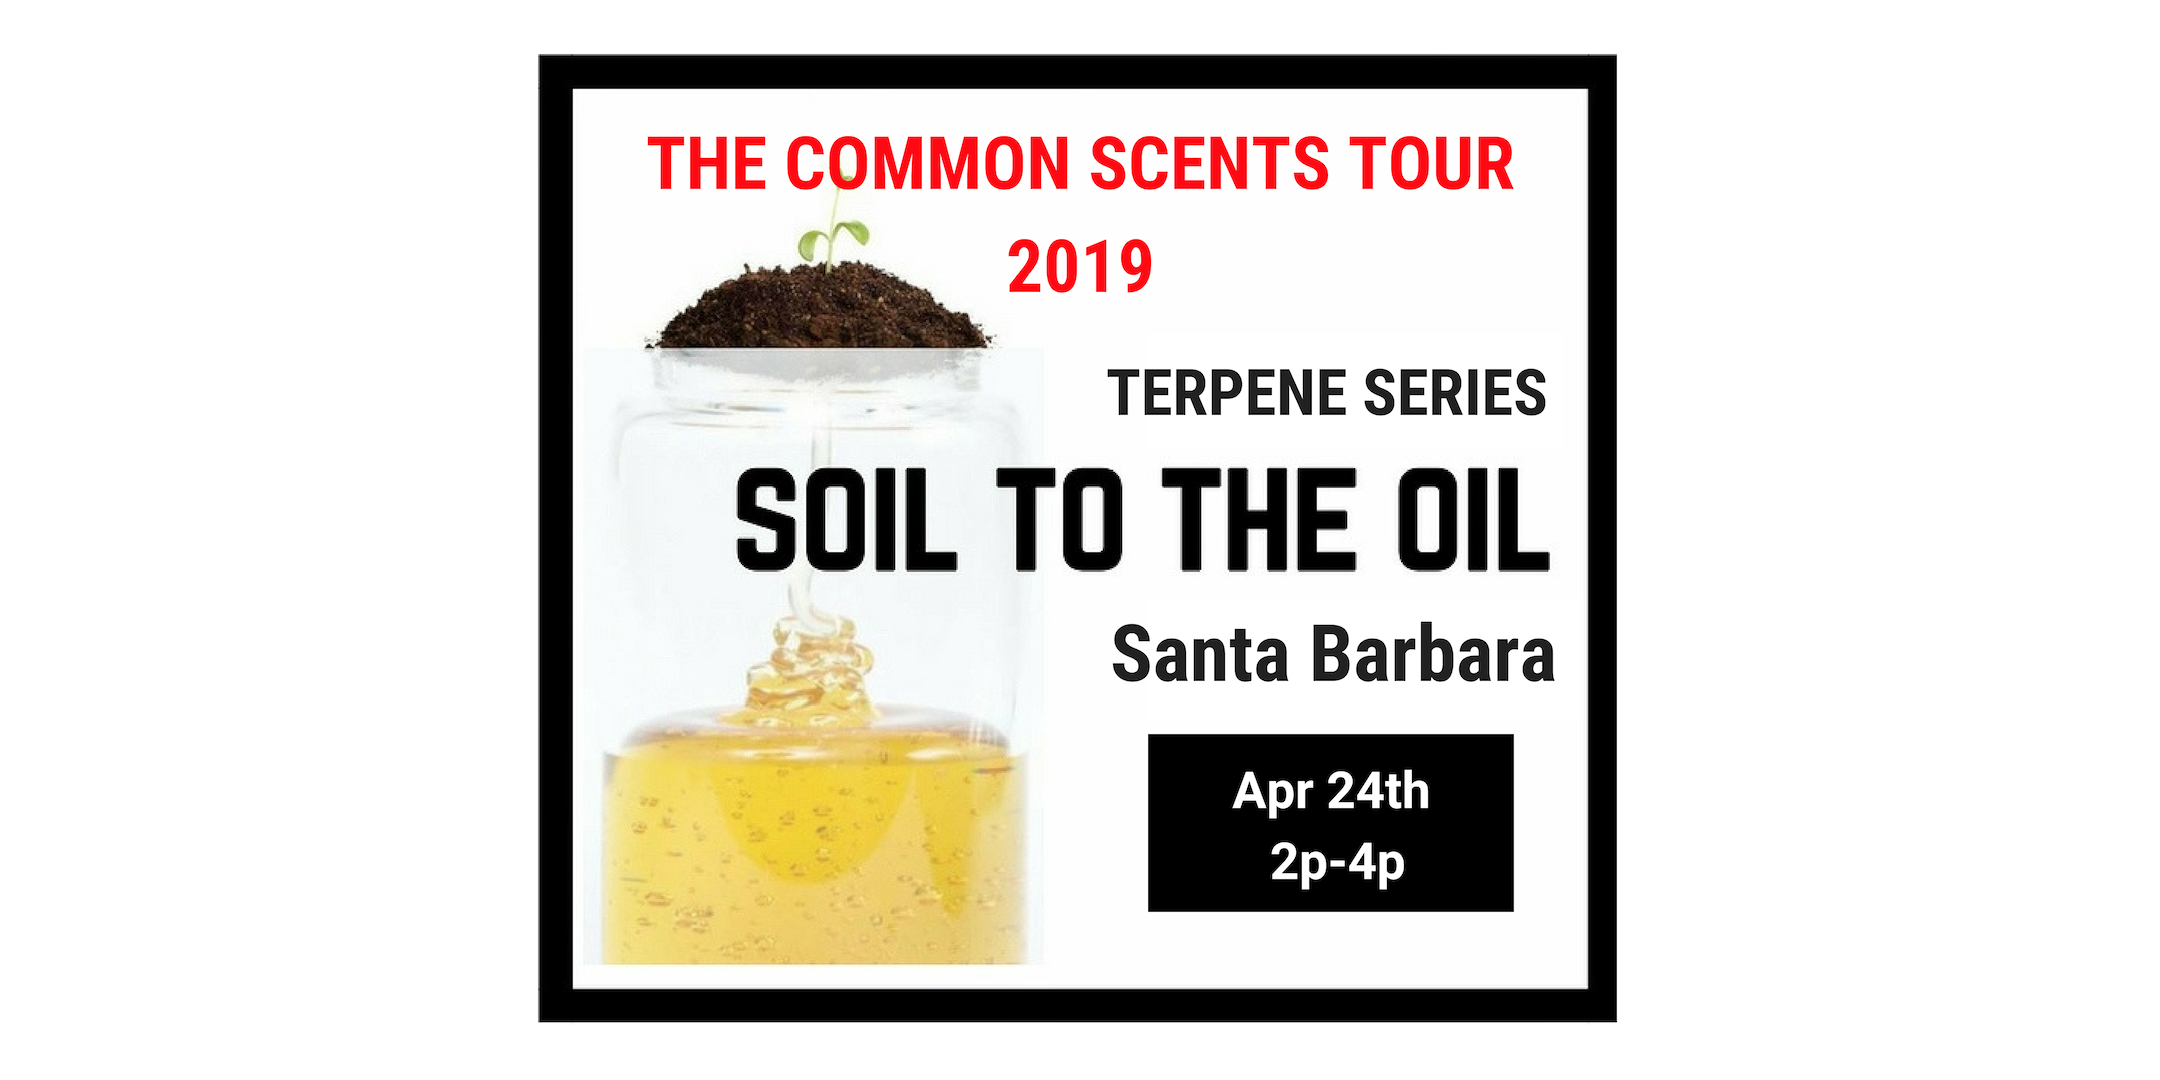 The Common Scents Tour - Santa Barbara